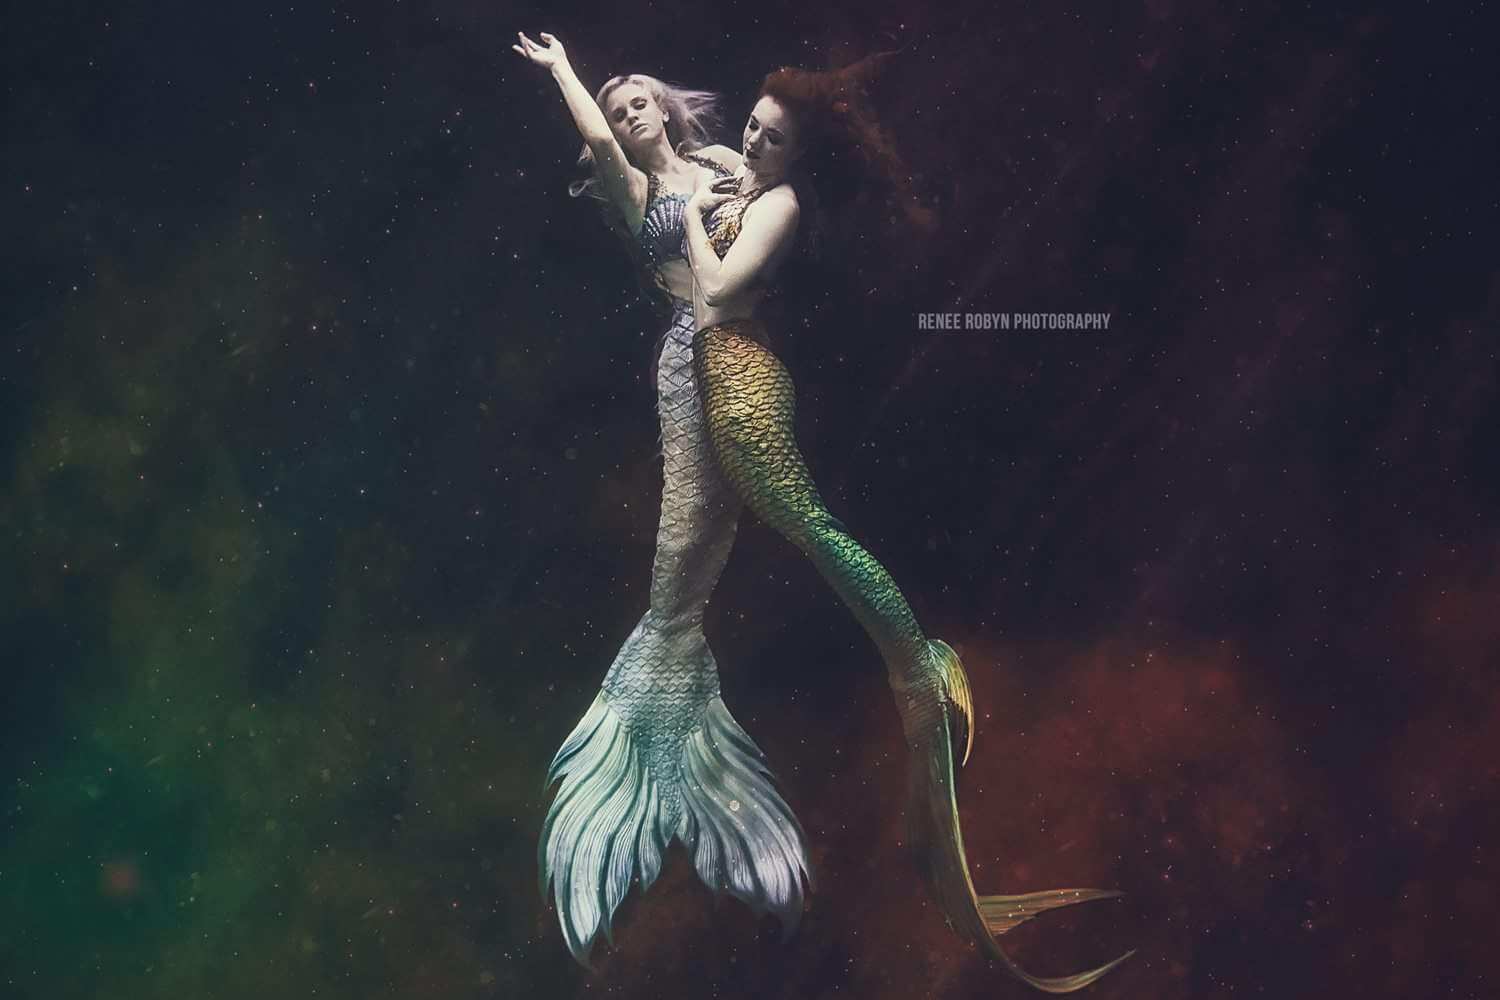 Catalina Mermaid Green Tail with Splash by Renee Robyn Photography.JPG